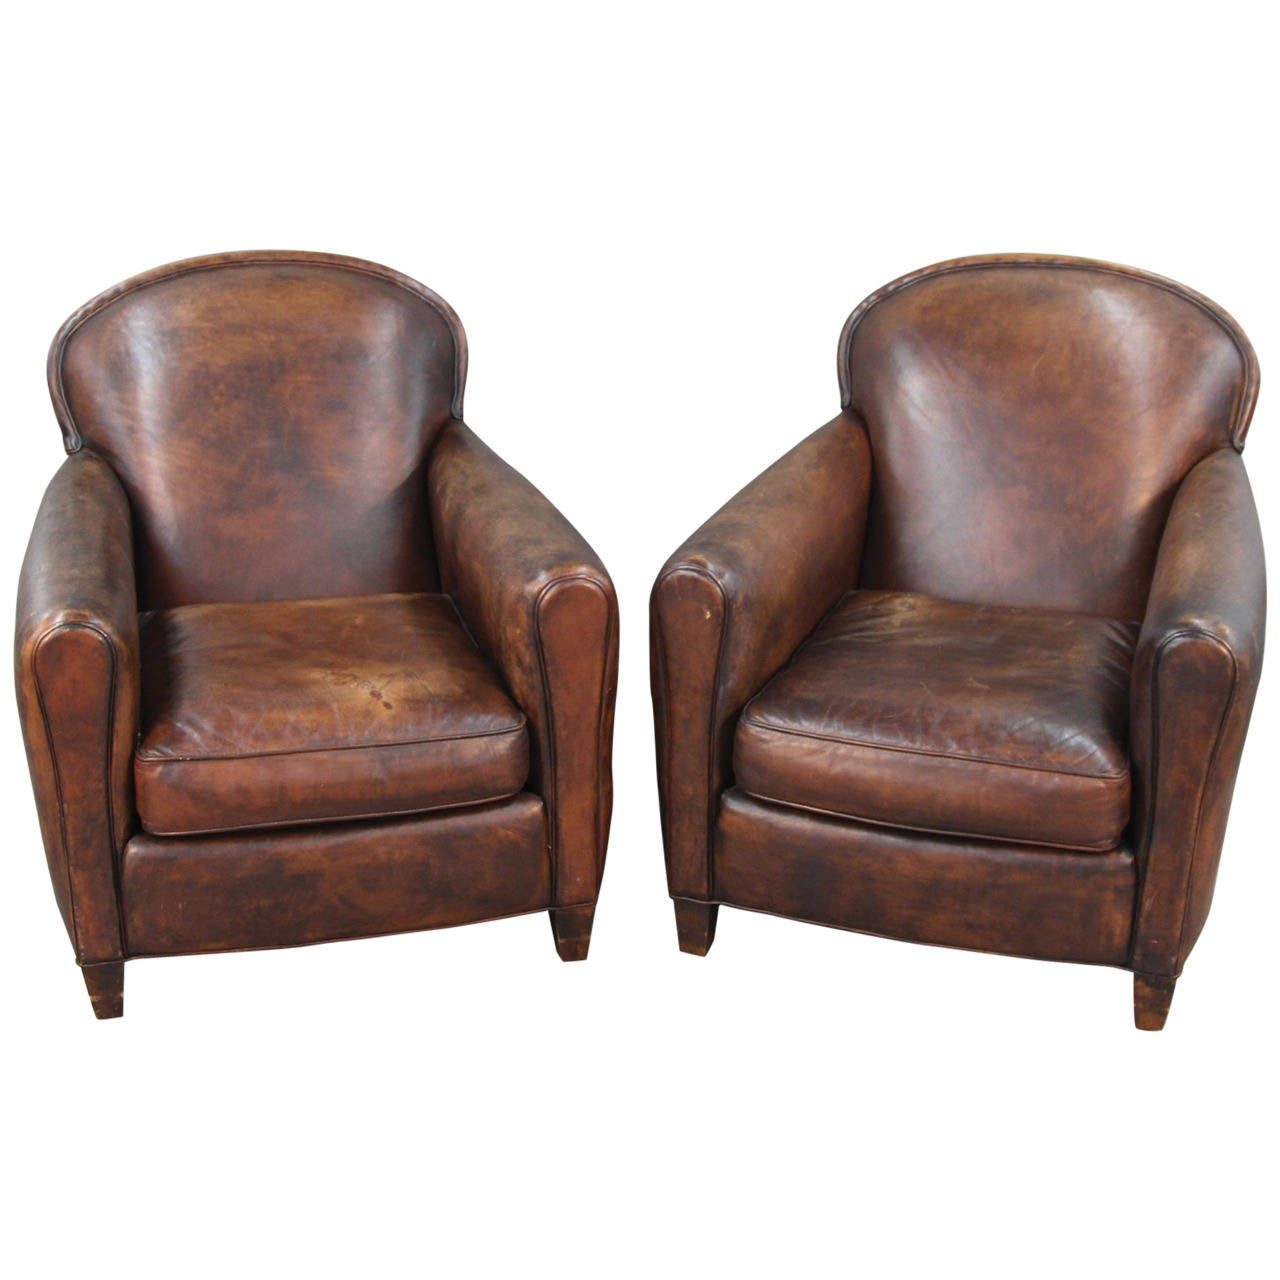 Pair Of Art Deco Style Leather Club Chairs At 1stdibs